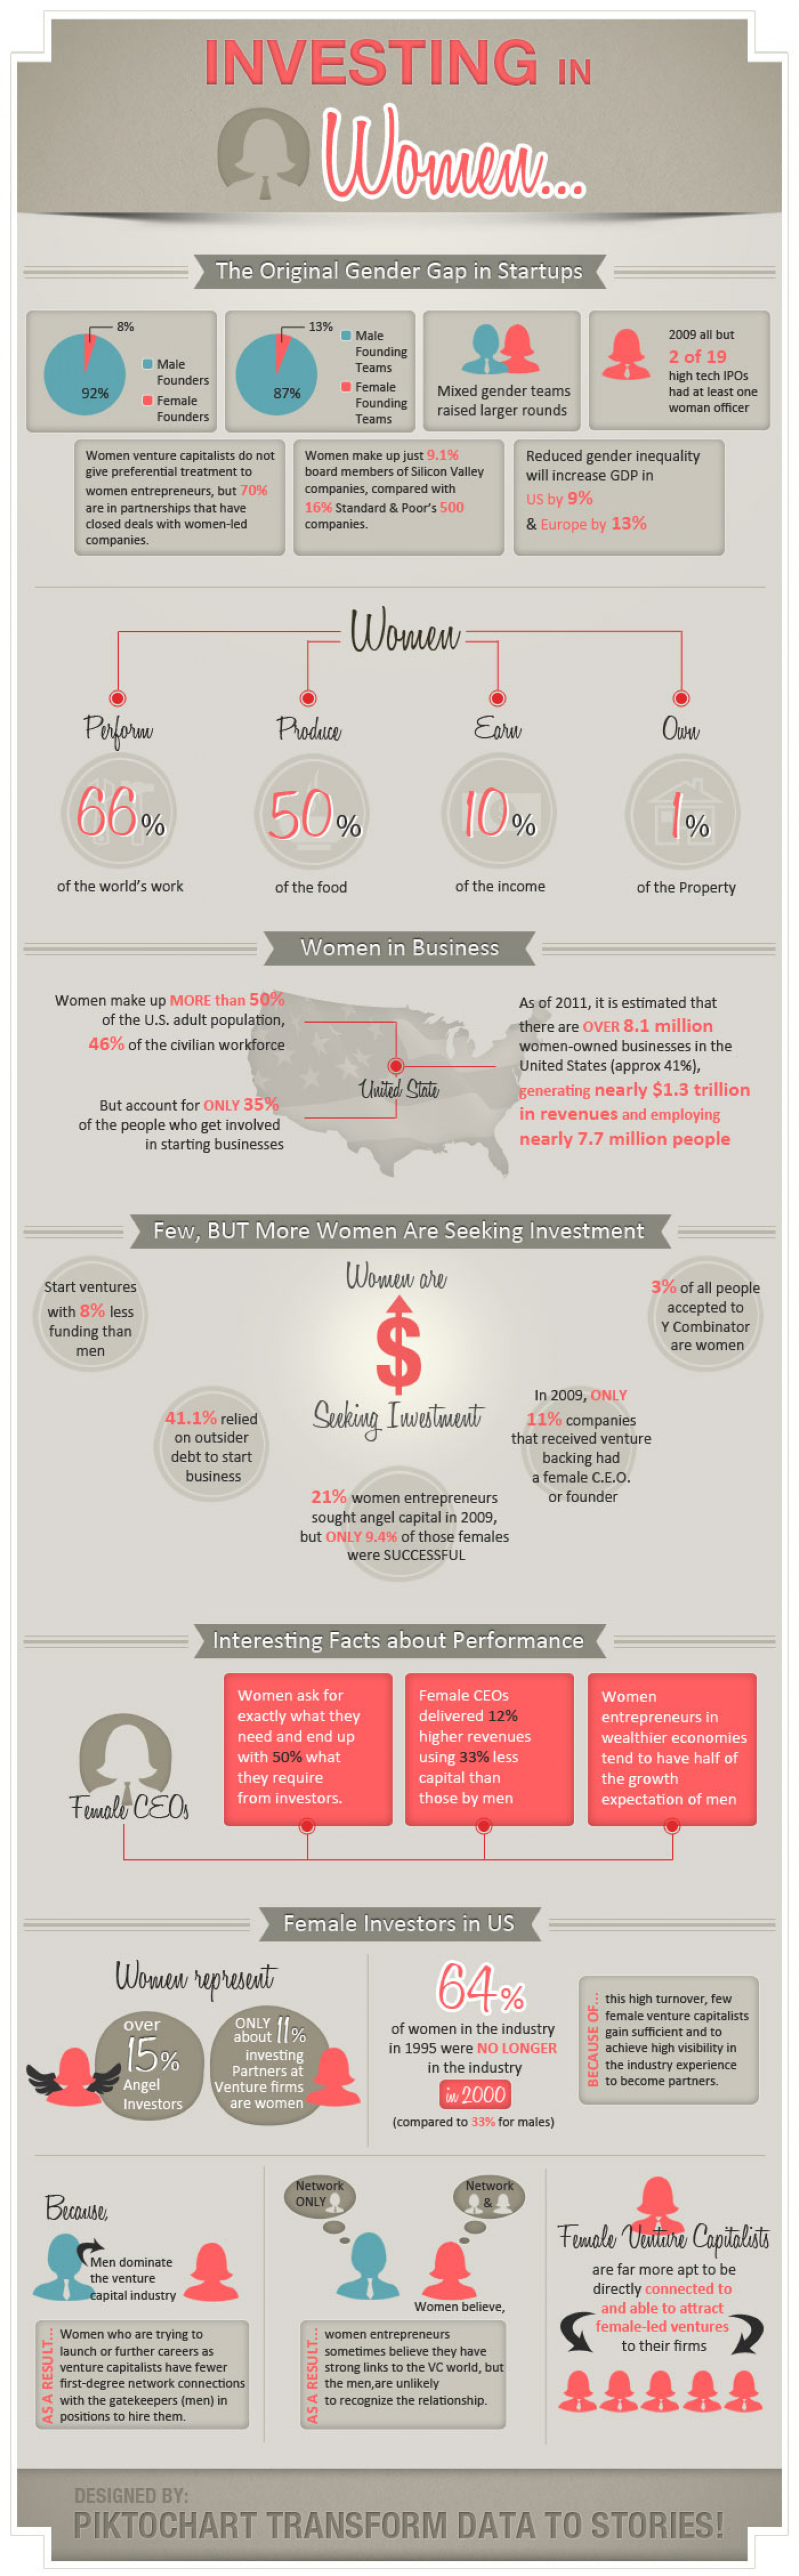 Investing in Women Infographic